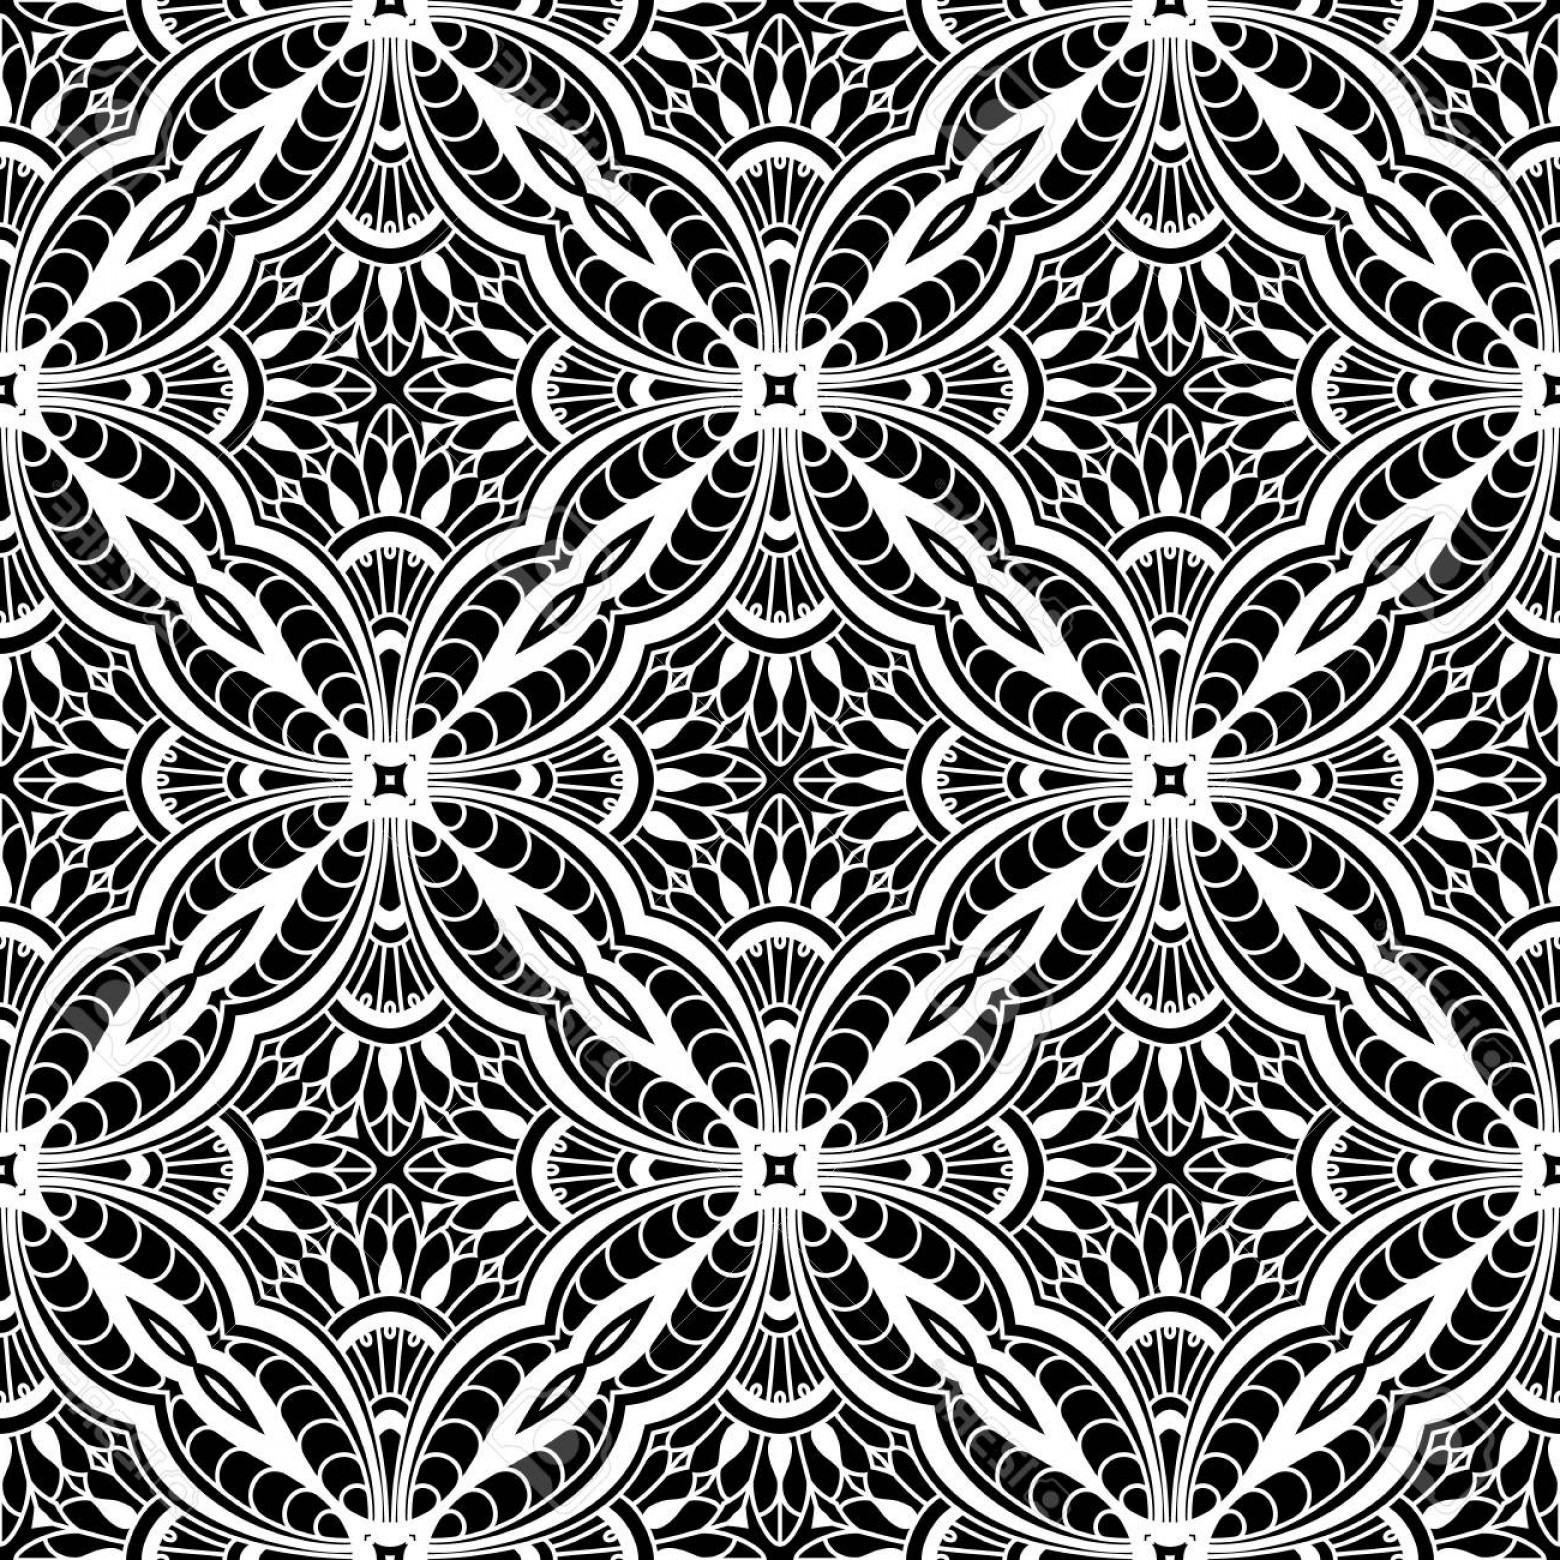 Tulle Black Lace Pattern Vector: Photostock Vector Black And White Seamless Pattern Lace Texture Vector Tulle Ornament